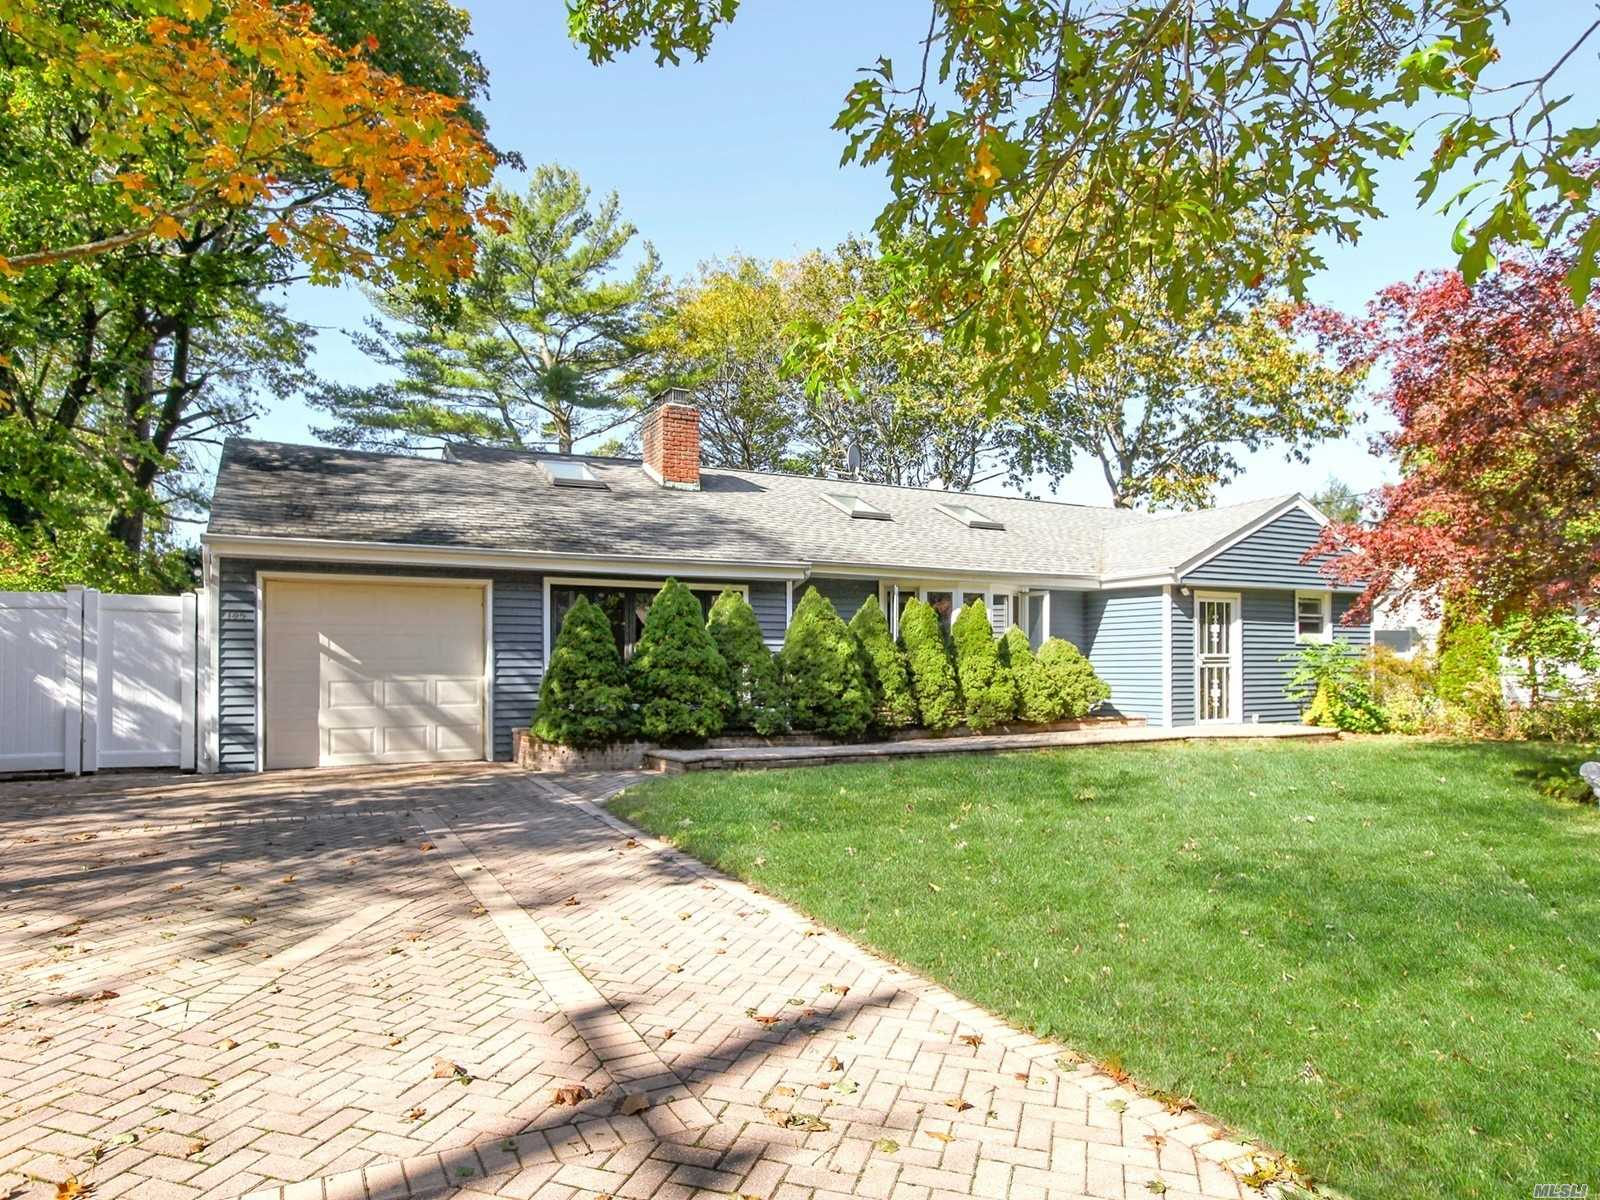 145 Cold Spring Rd - Syosset, New York